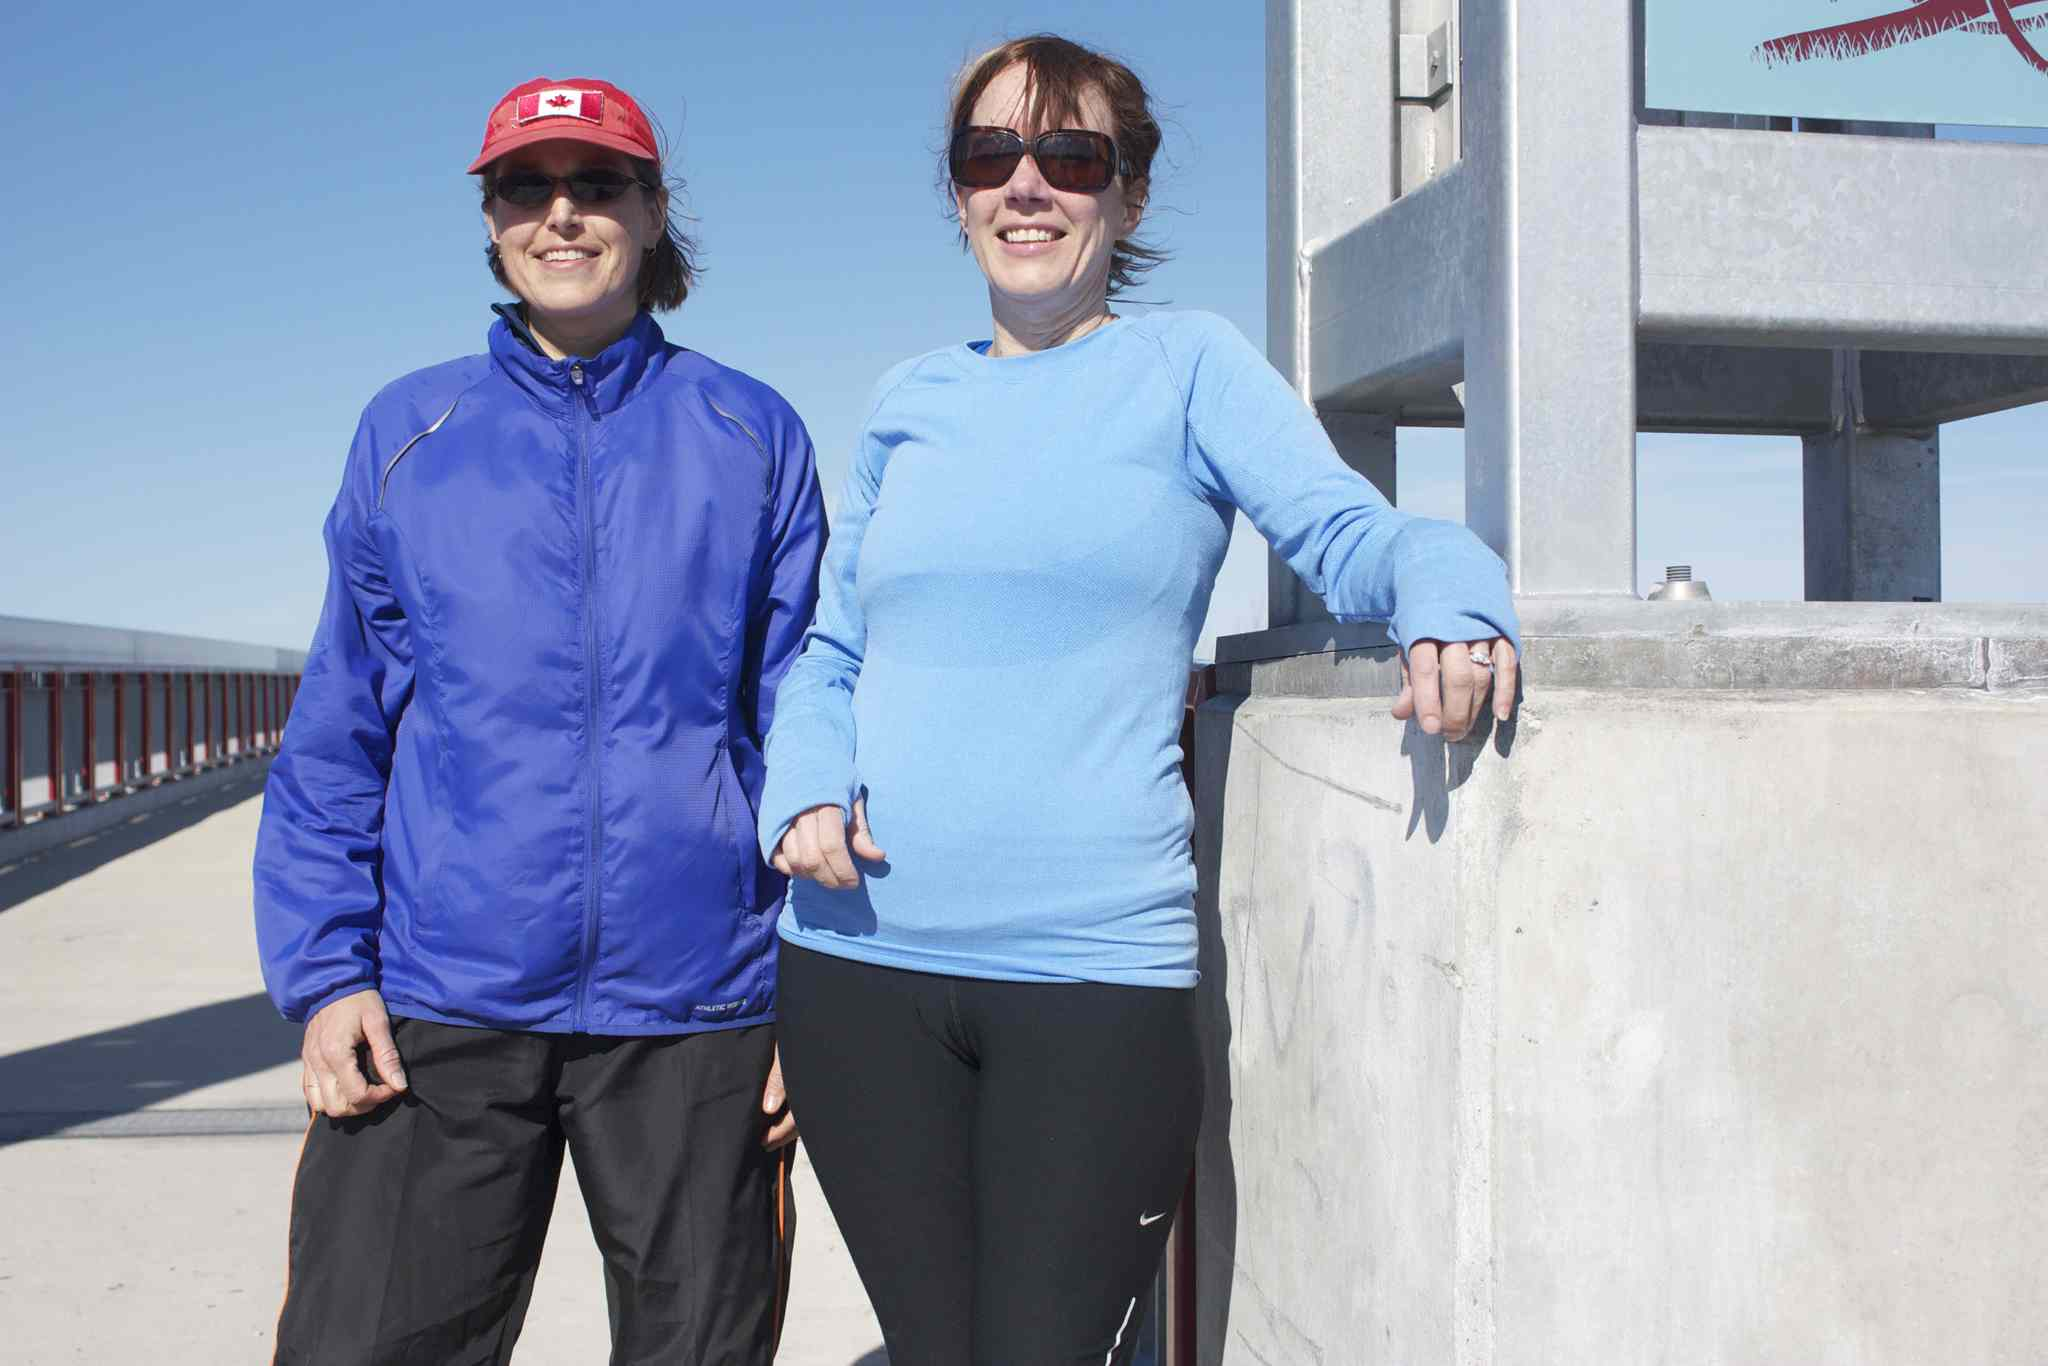 Peguis Pioneer Pacers founder Maureen Peniuk and runner Jane McCarville are shown at the group's meeting point on the Northeast Pioneers Greenway near the intersection of the Chief Peguis Trail and Gateway Road.